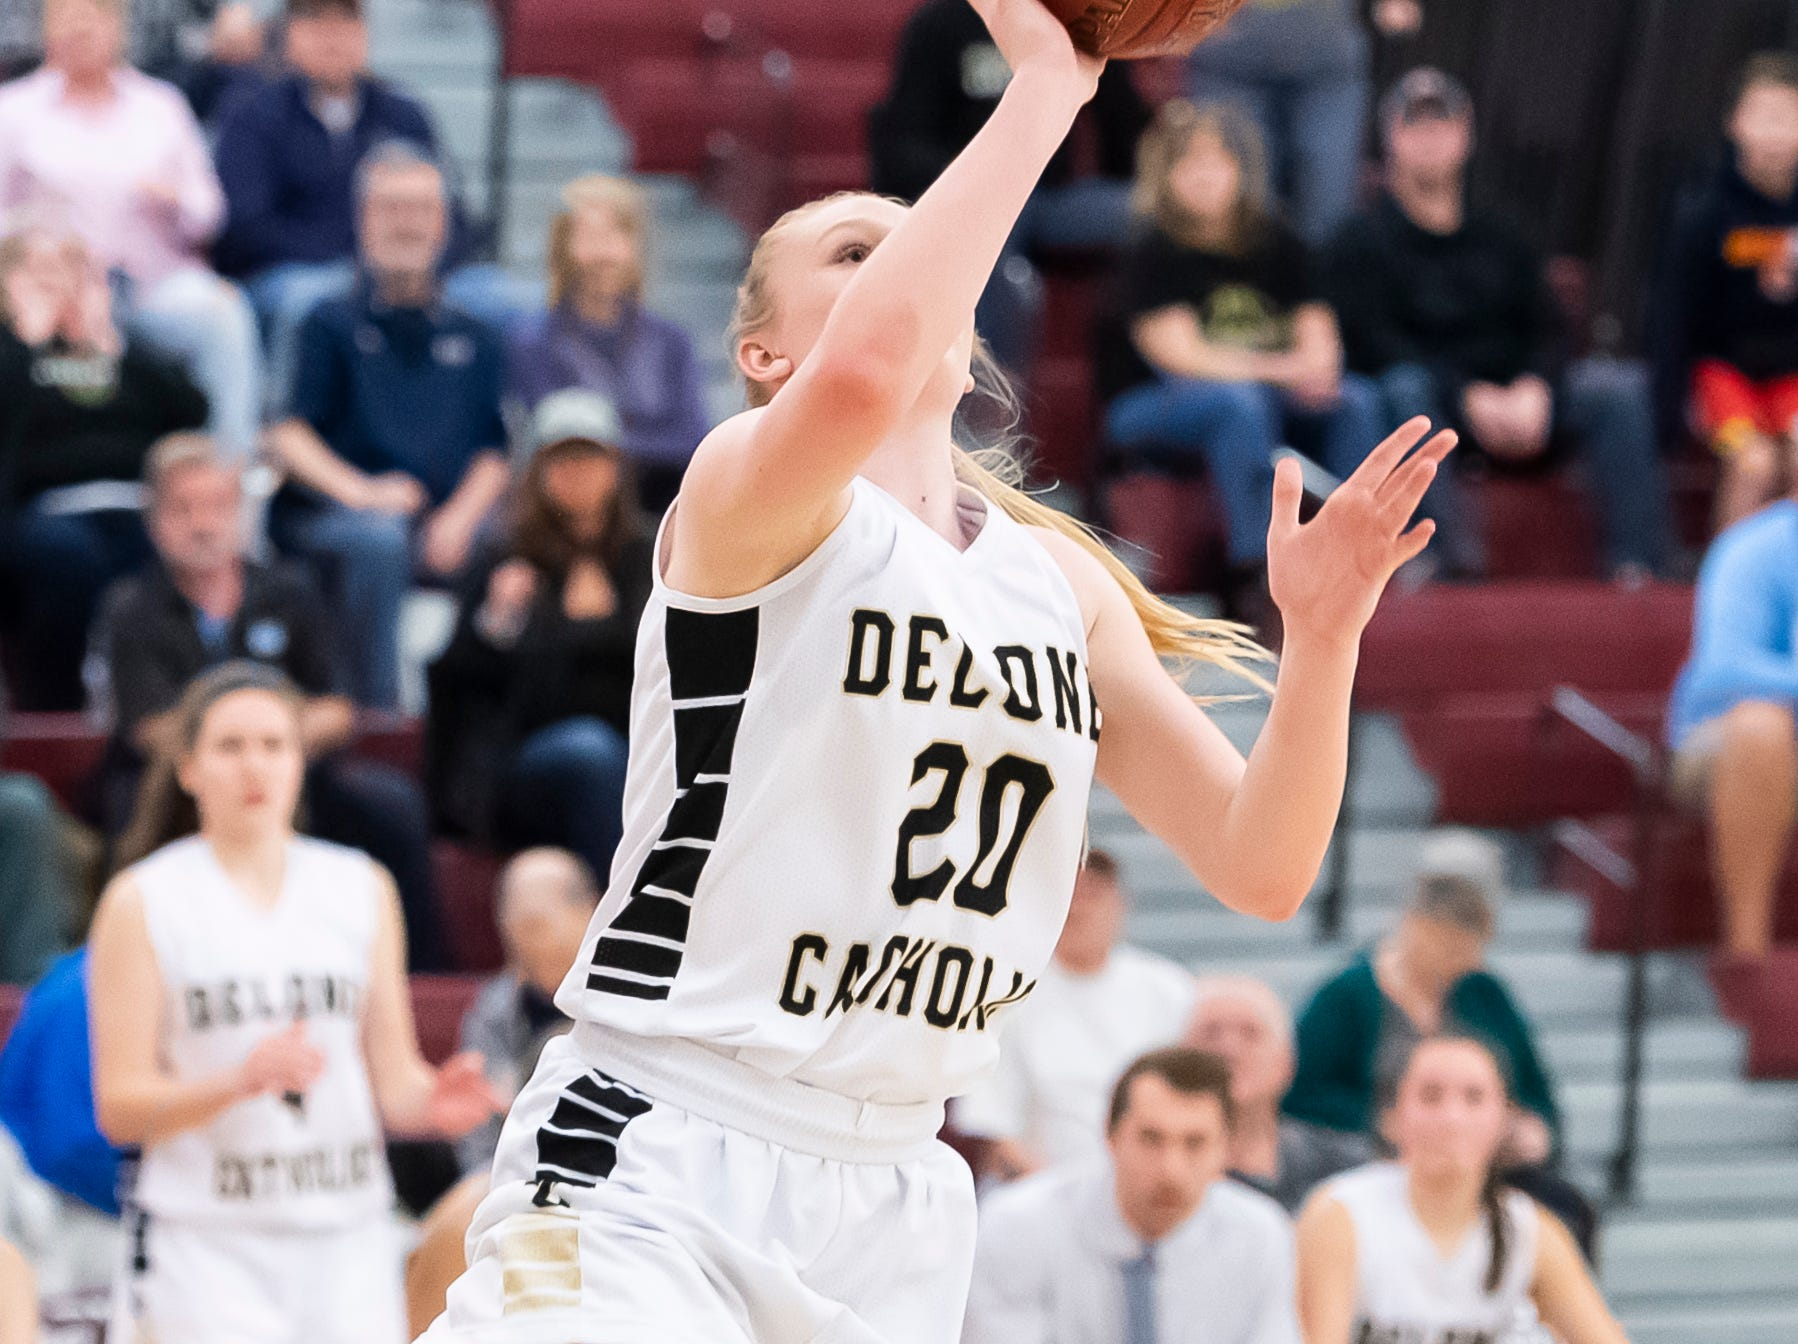 Delone Catholic's Brooke Lawyer shoots and scores on a layup late in the fourth quarter against Neshannock during a PIAA 3A quarterfinal in Altoona, Pa., on Friday, March 15, 2019. The Squirettes won 50-41.